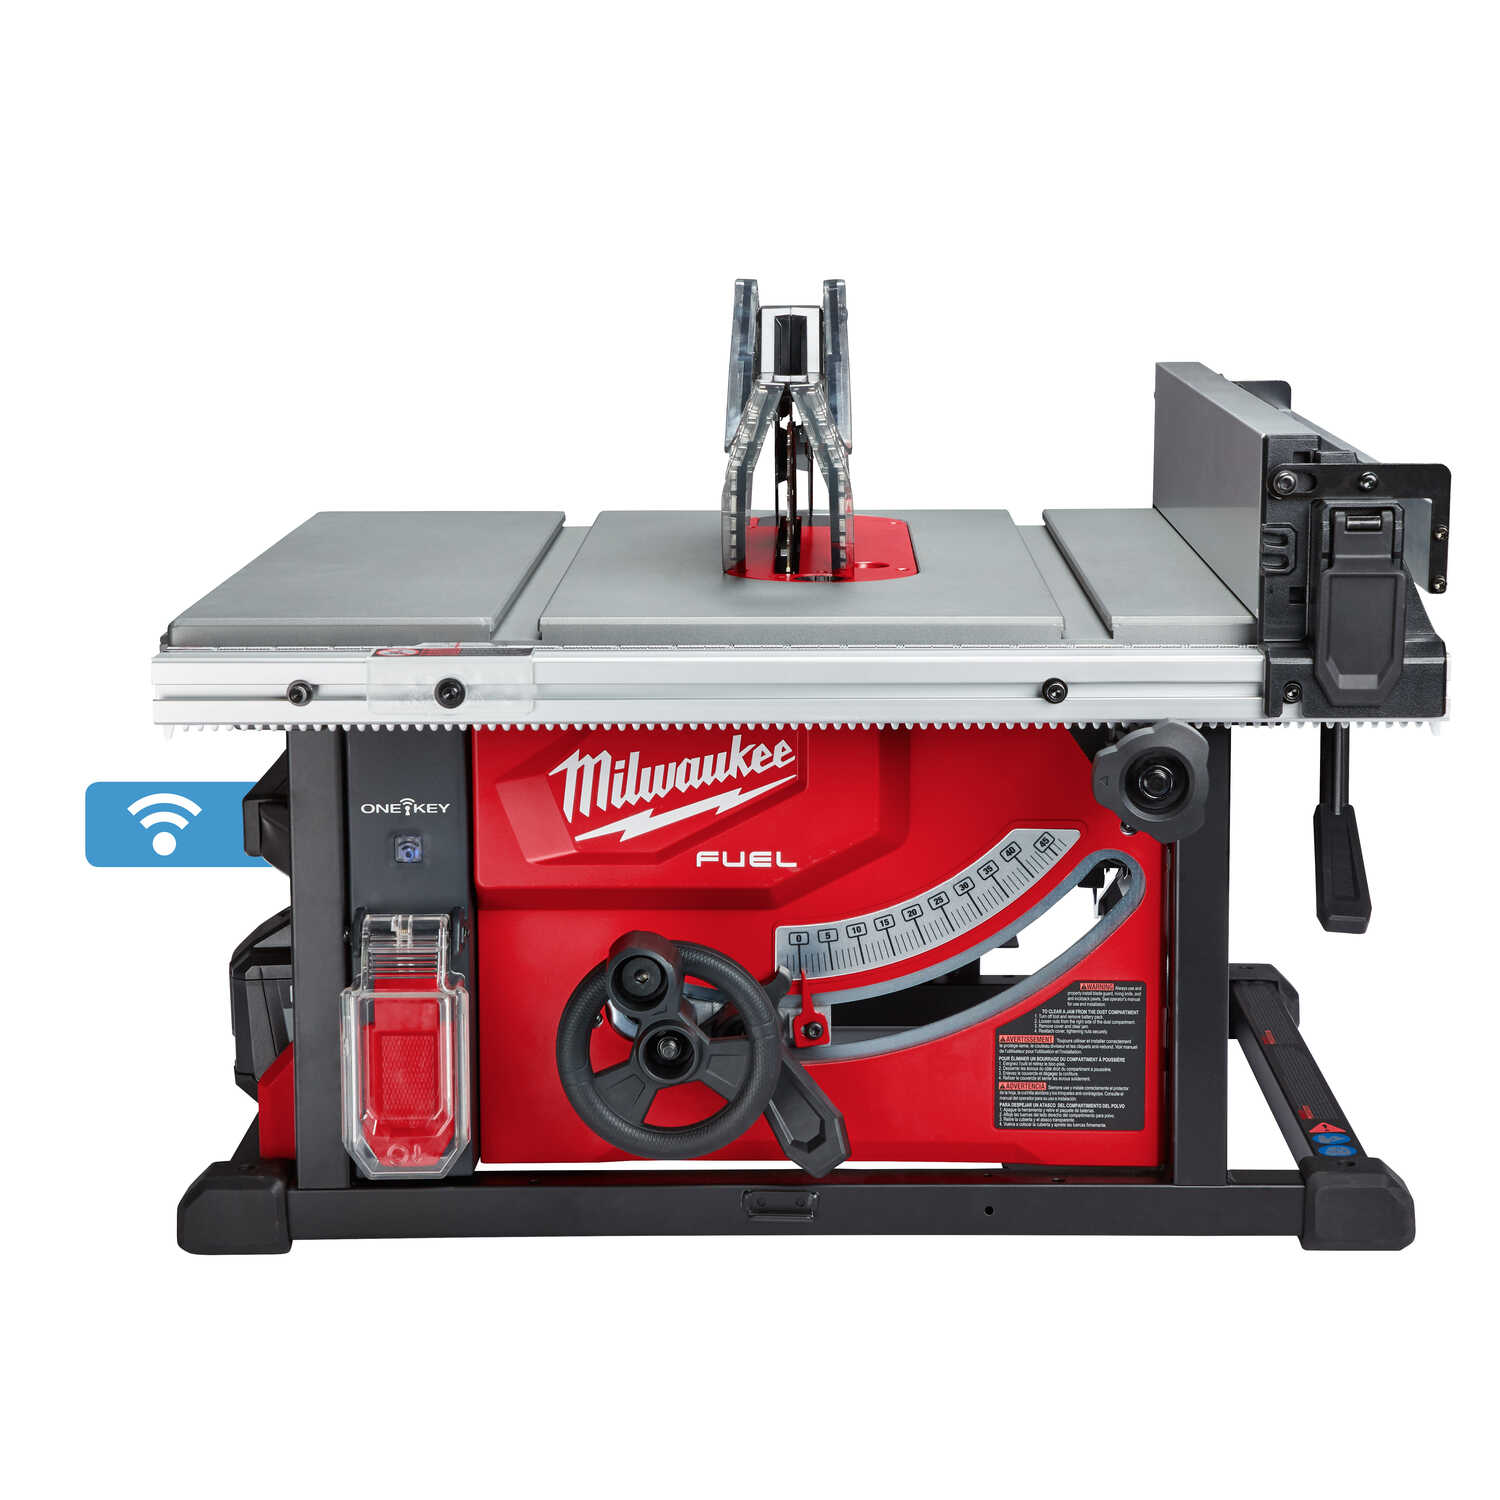 Milwaukee  M18 FUEL  8-1/4 in. Cordless  Table Saw  with One-Key  15 amps 18 volt 5800 rpm Red